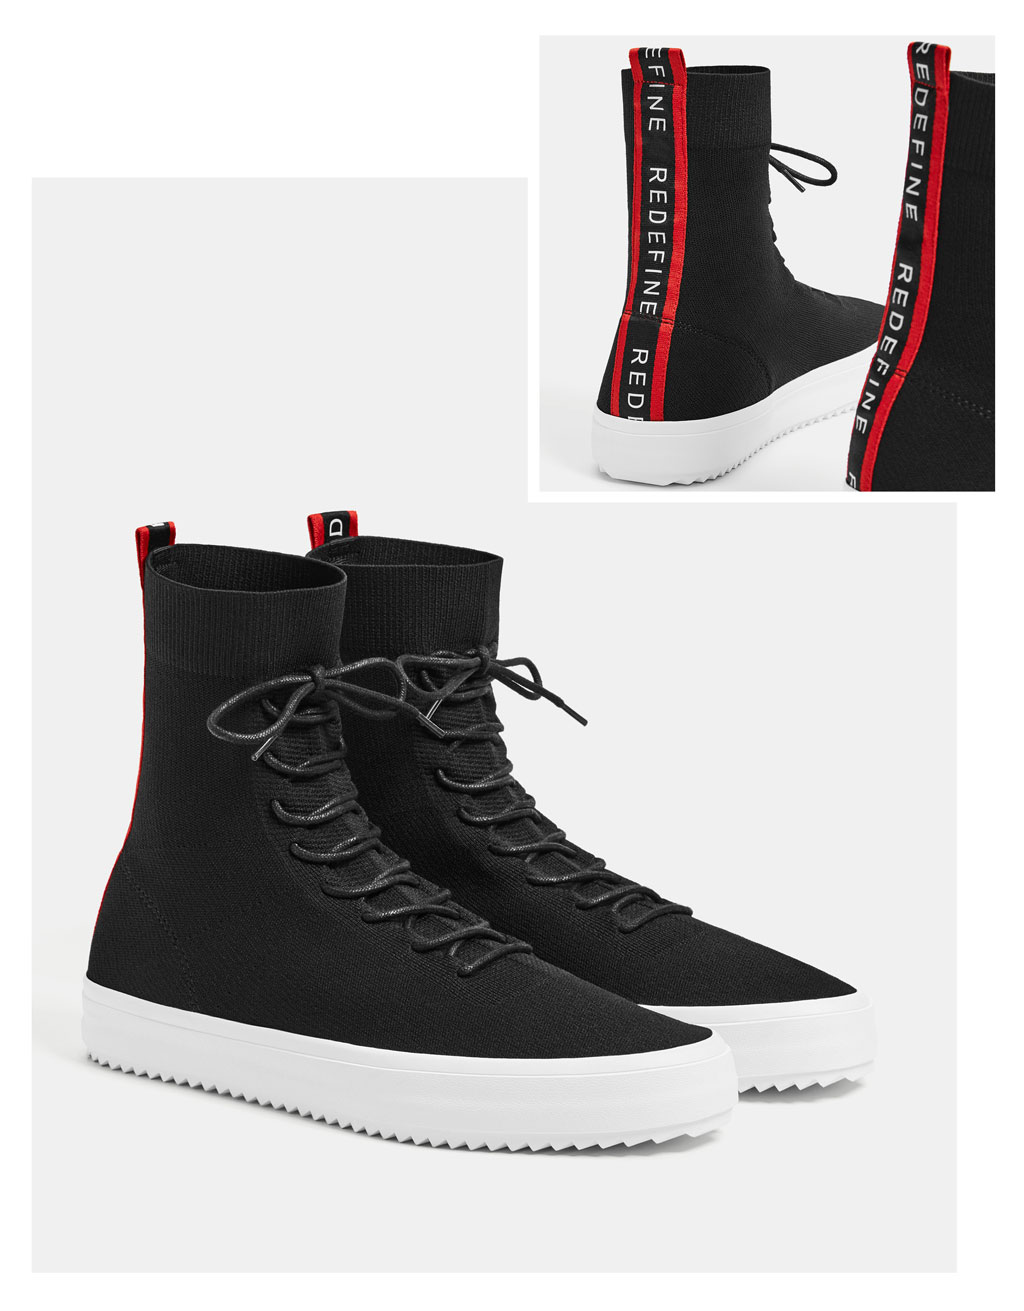 Men's high-top sock-style sneakers